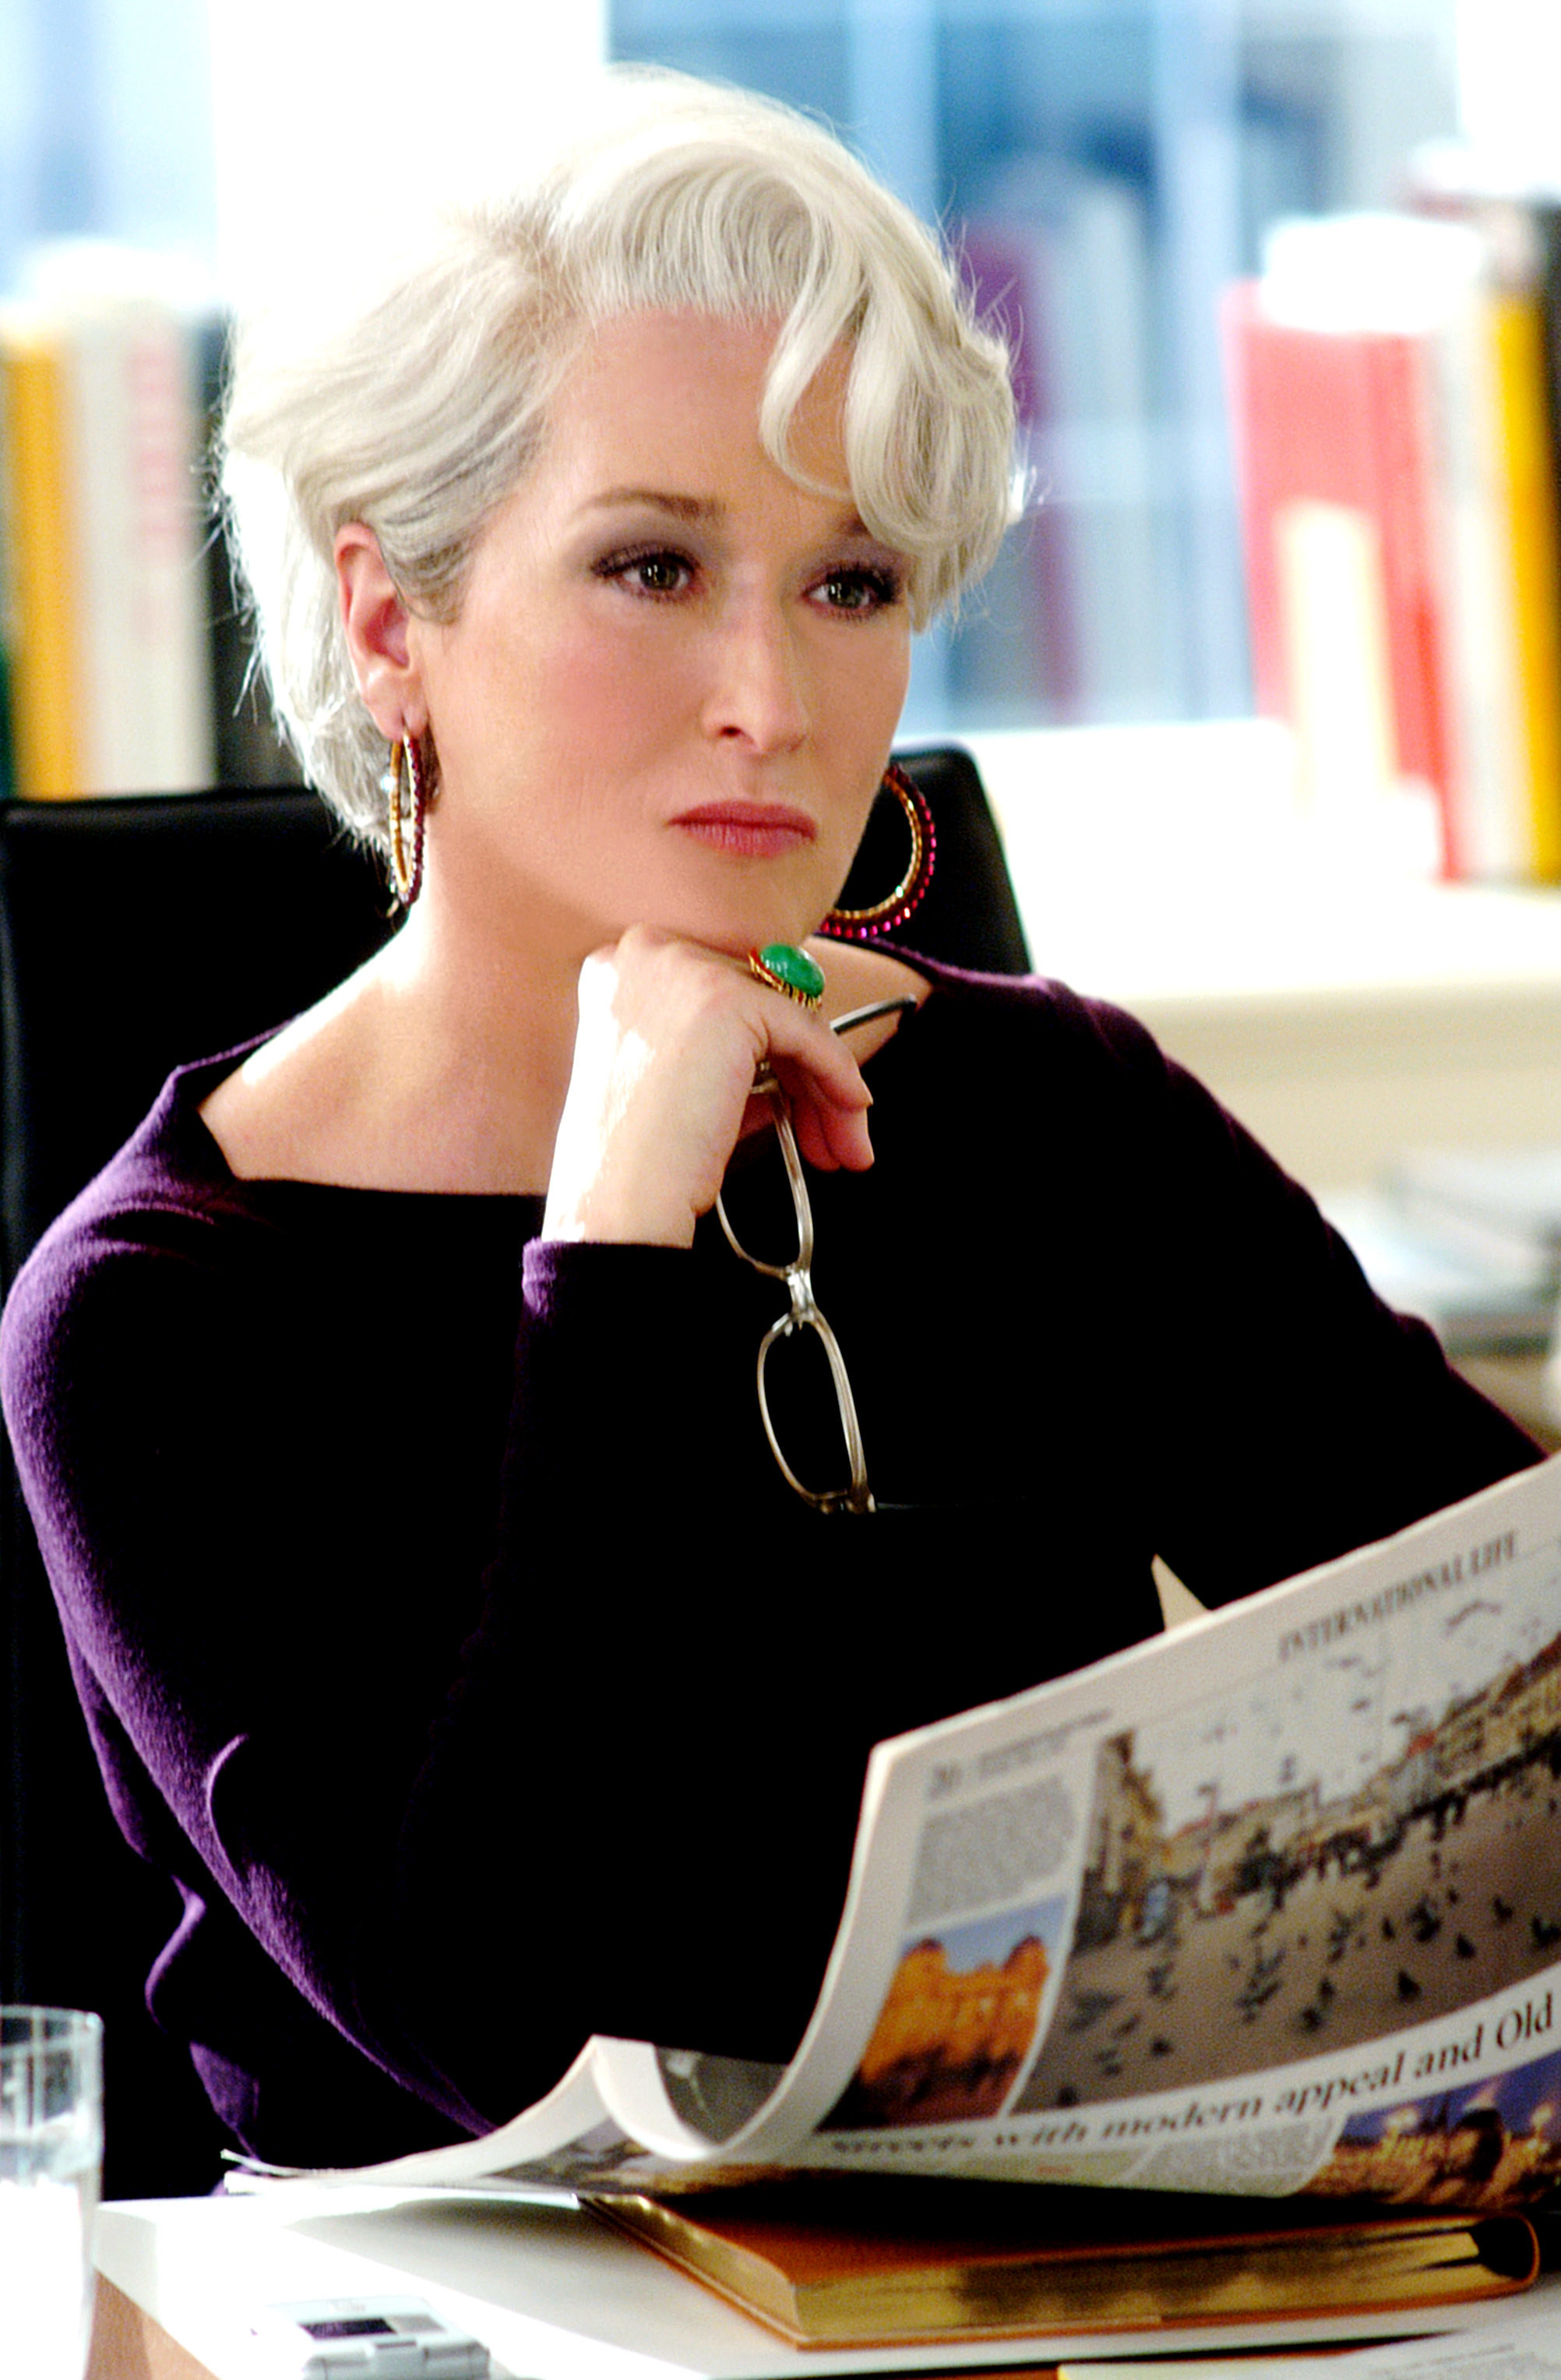 Meryl Streep looking pensive with a newspaper in her hand